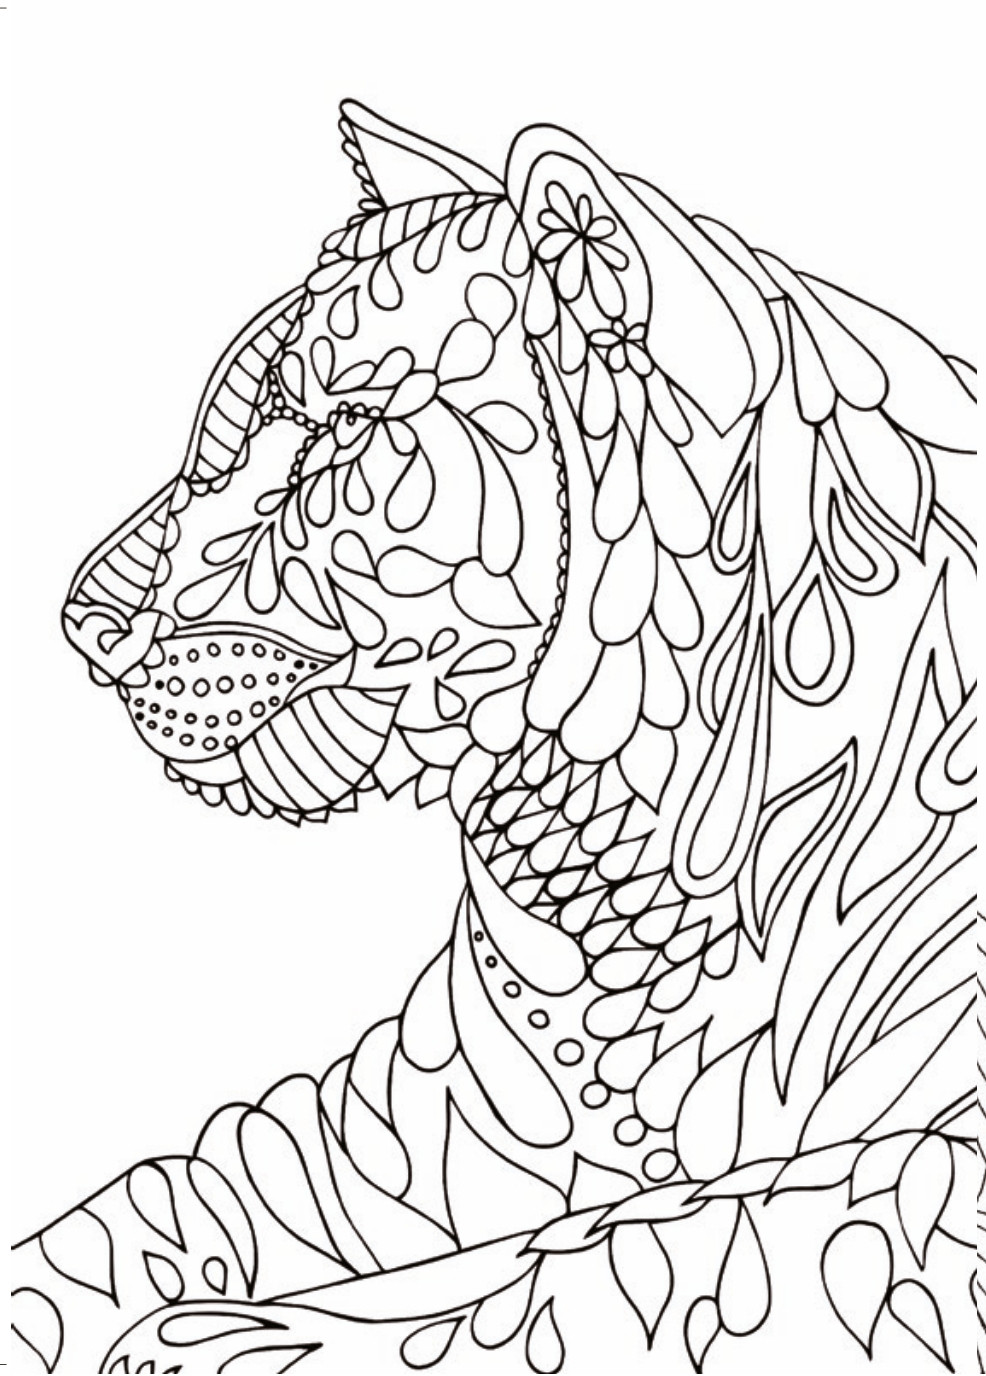 Coloring Sheets For Kids On Worrying  Mindfulness Coloring Pages 9NCM Downloadable Colouring